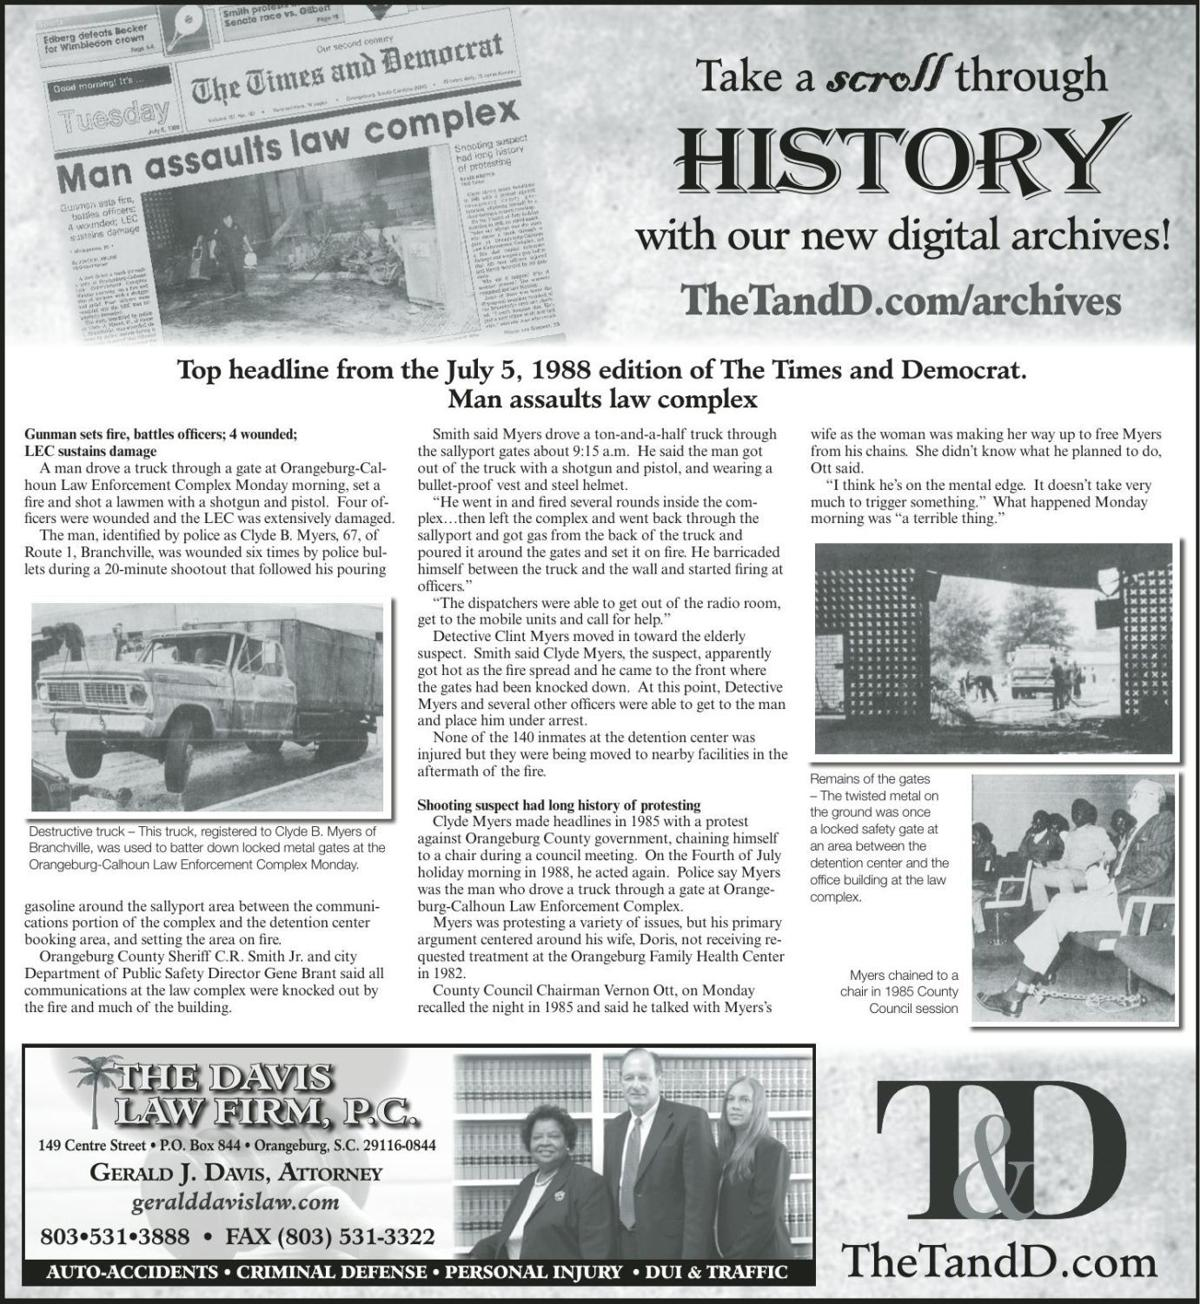 TheTandD.com/archives July 7, 2019